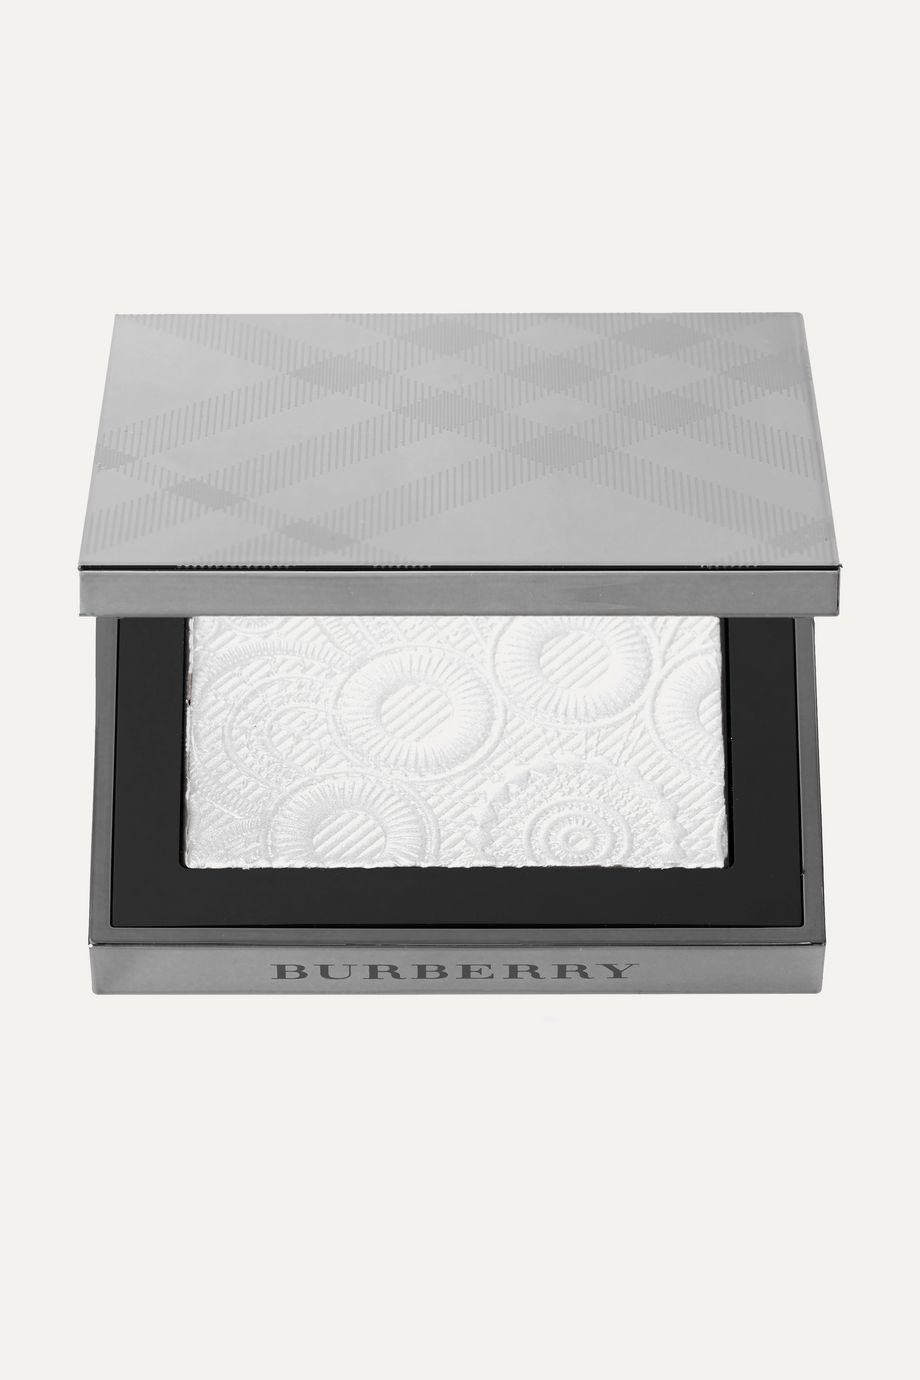 Burberry Beauty Fresh Glow Highlighter - White No.01